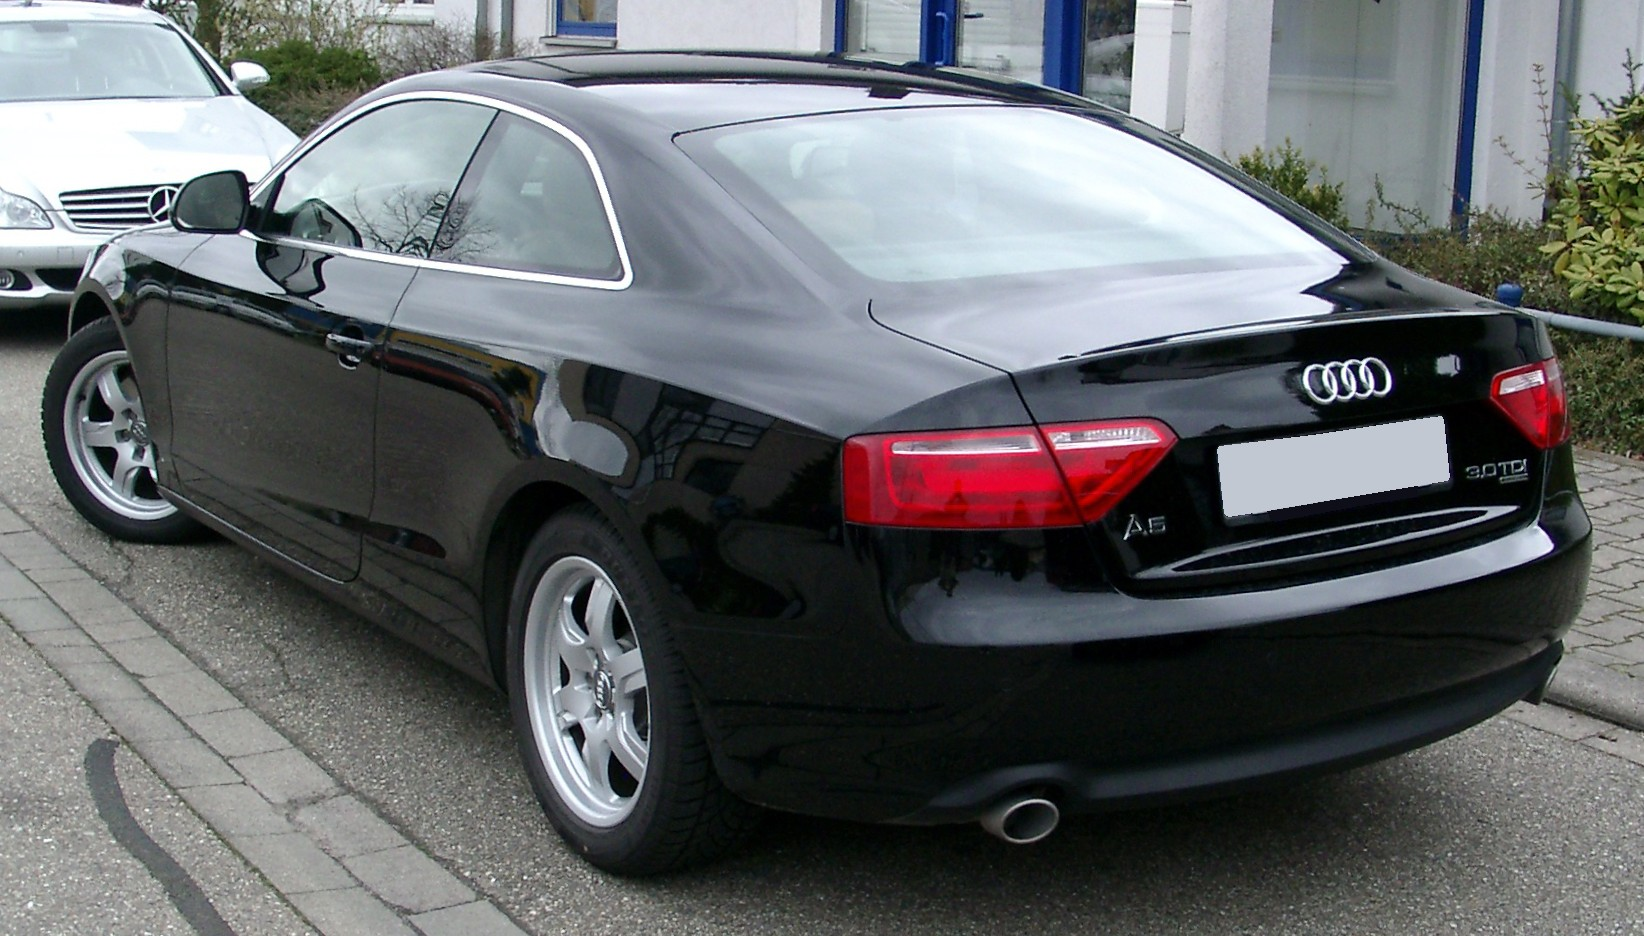 File Audi A5 Rear 20080414 Jpg Wikimedia Commons